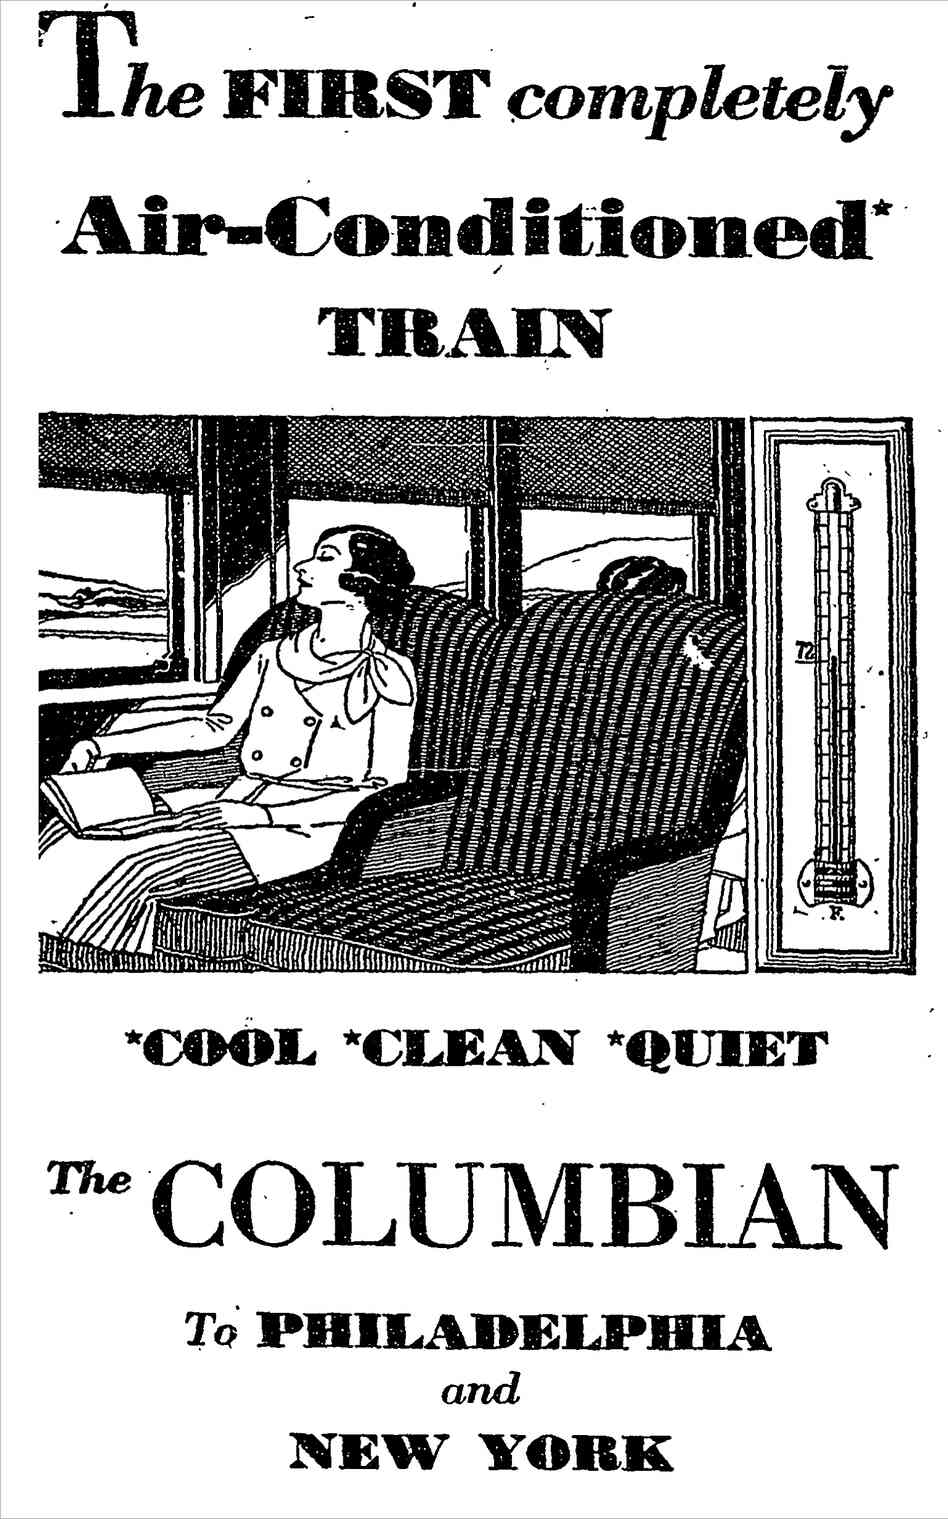 A series of 1931 newspaper ads touted the latest comfort for rail passengers on the B&O's Columbian line.